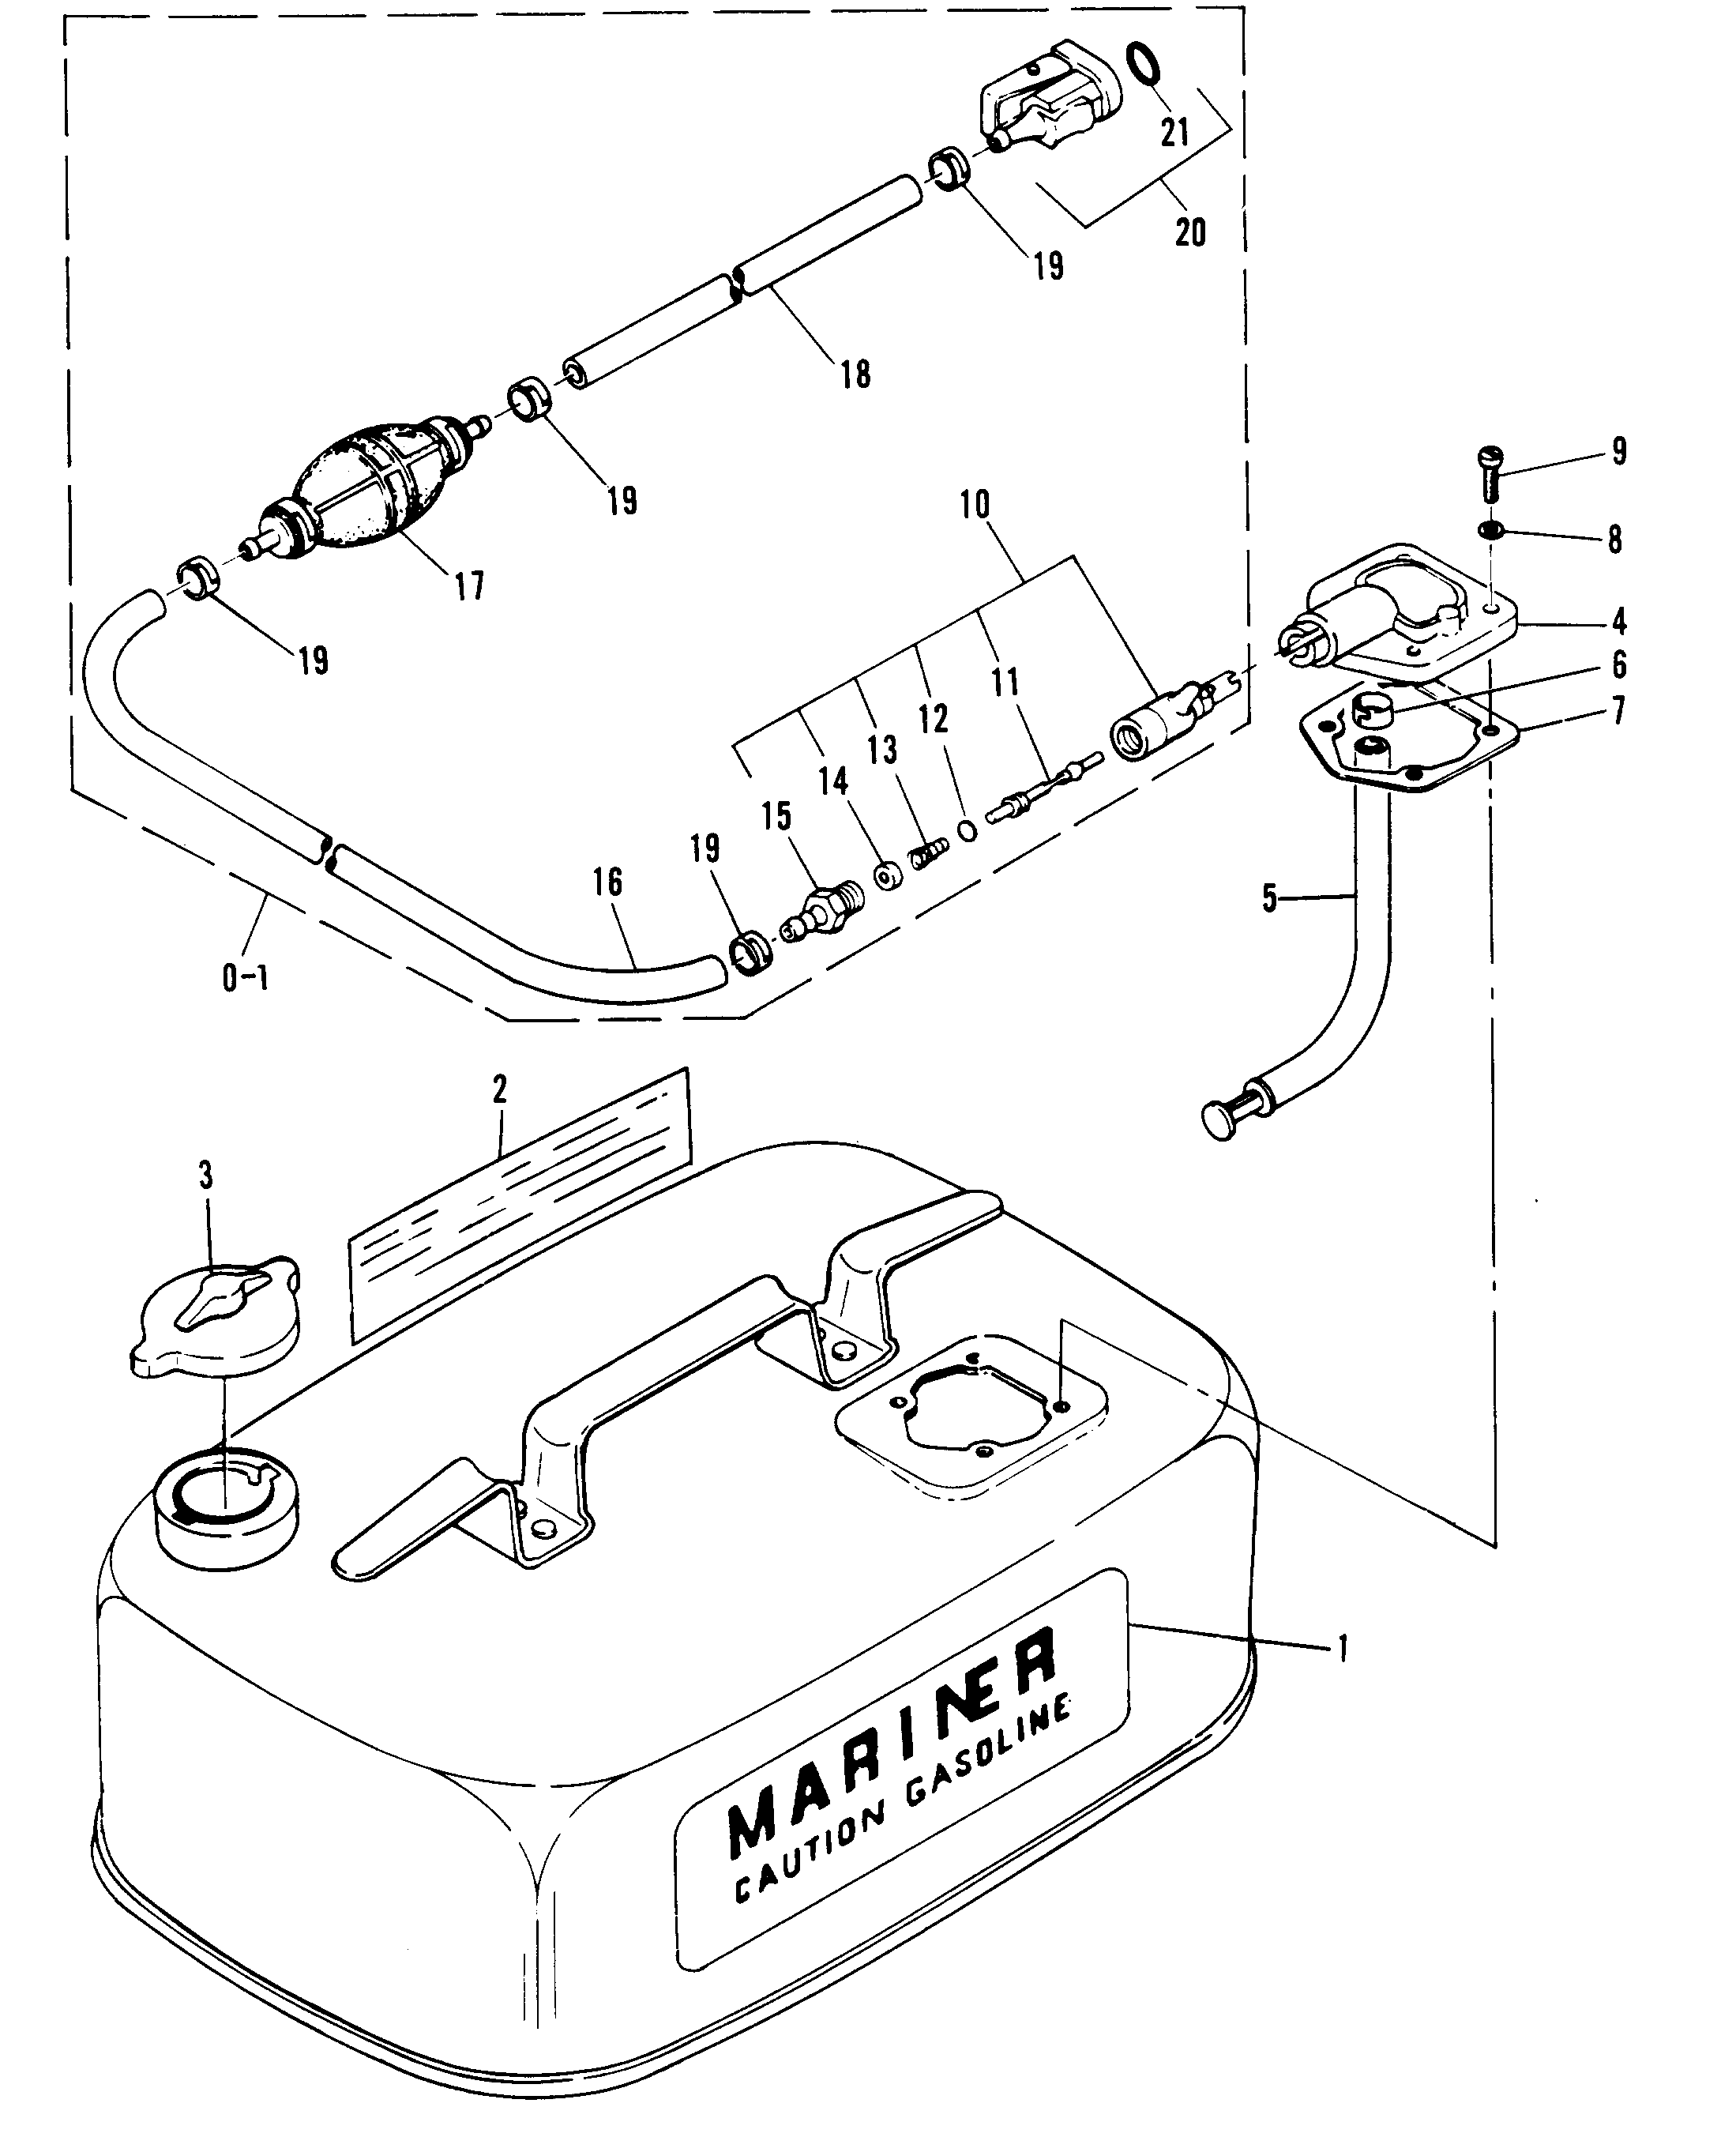 Fuel Tank And Fuel Line Assembly For Mariner Mariner 8